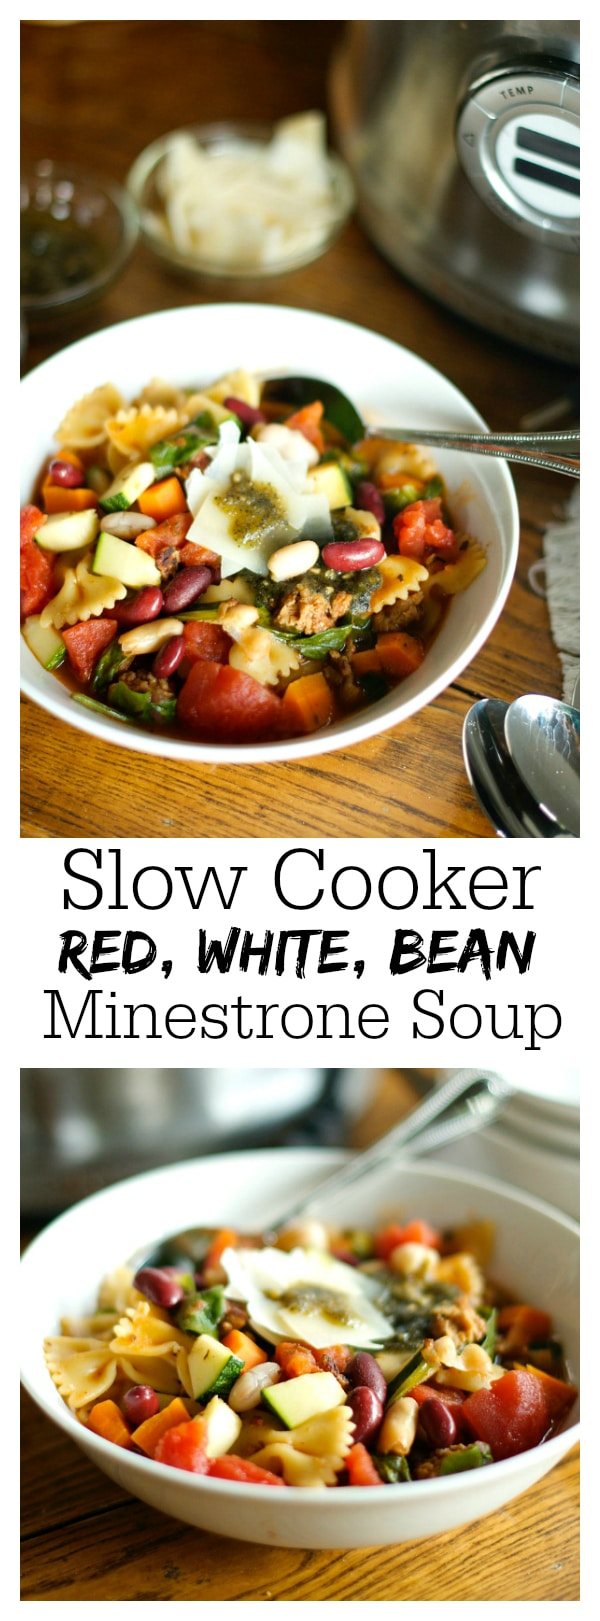 Slow Cooker Red, White, and Bean Minestrone Soup